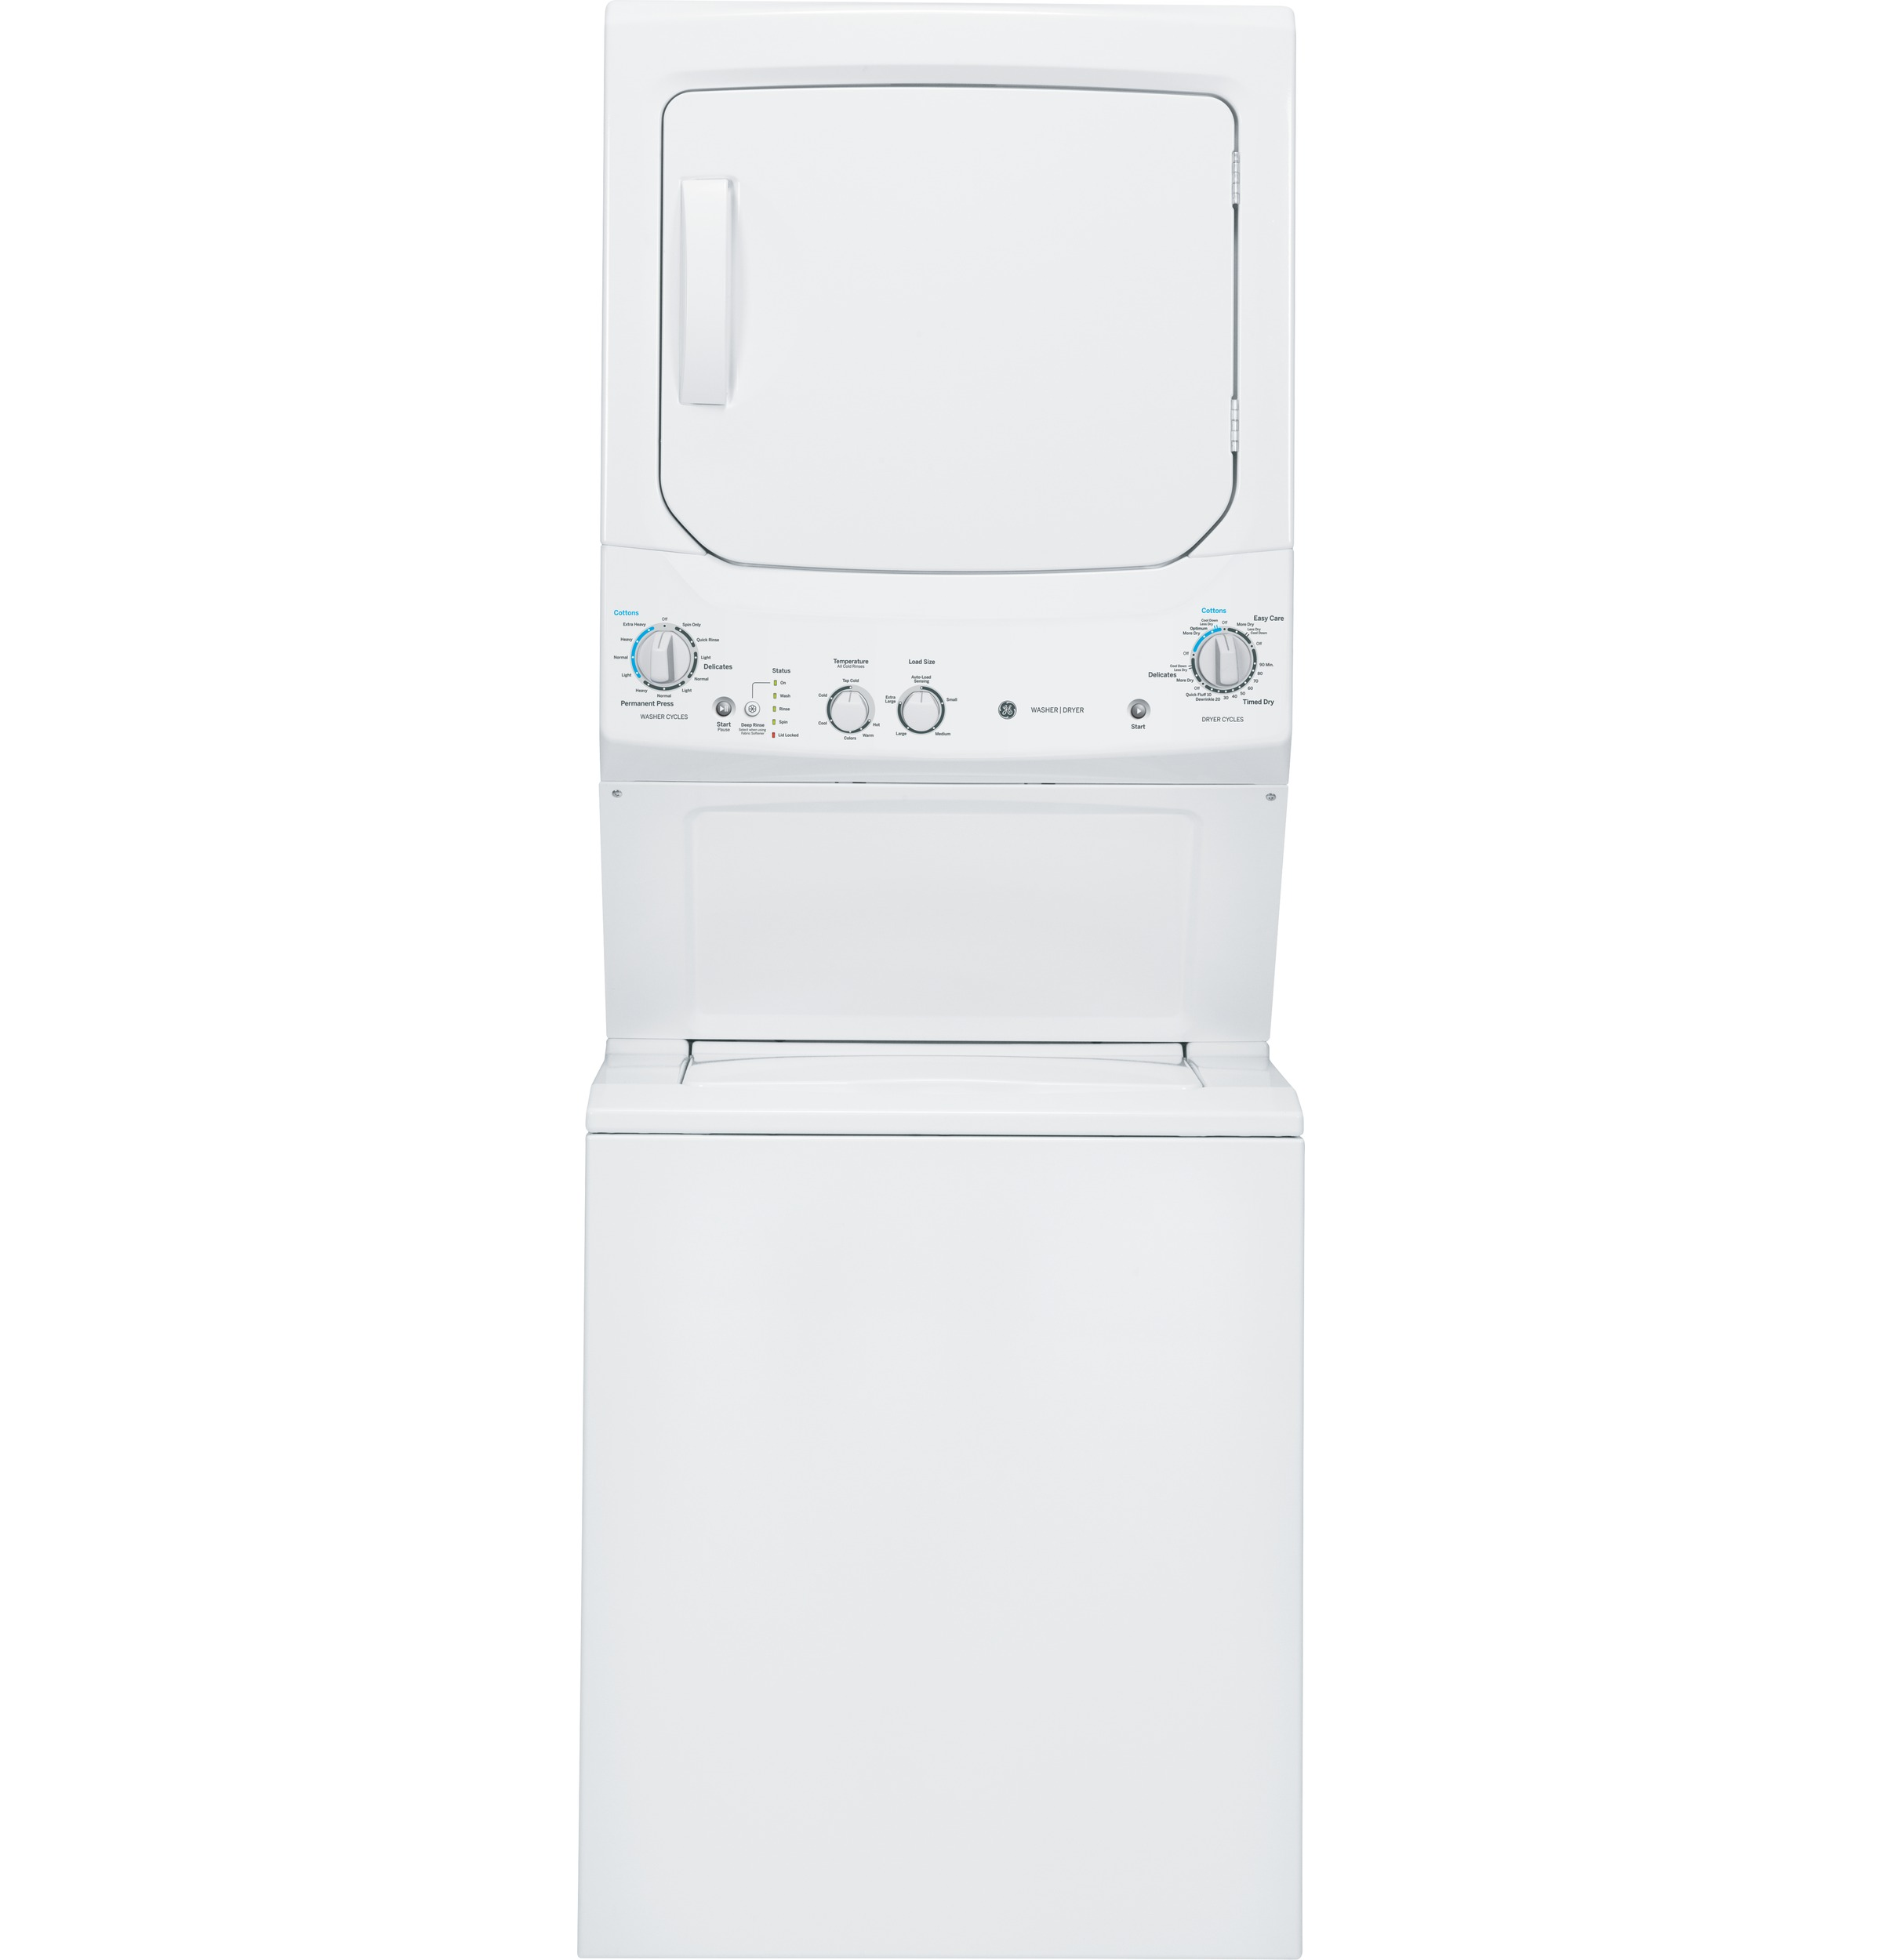 Ge Appliance Service Center Ge Unitized Spacemakerar 32 Doe Cu Ft Washer And 59 Cu Ft